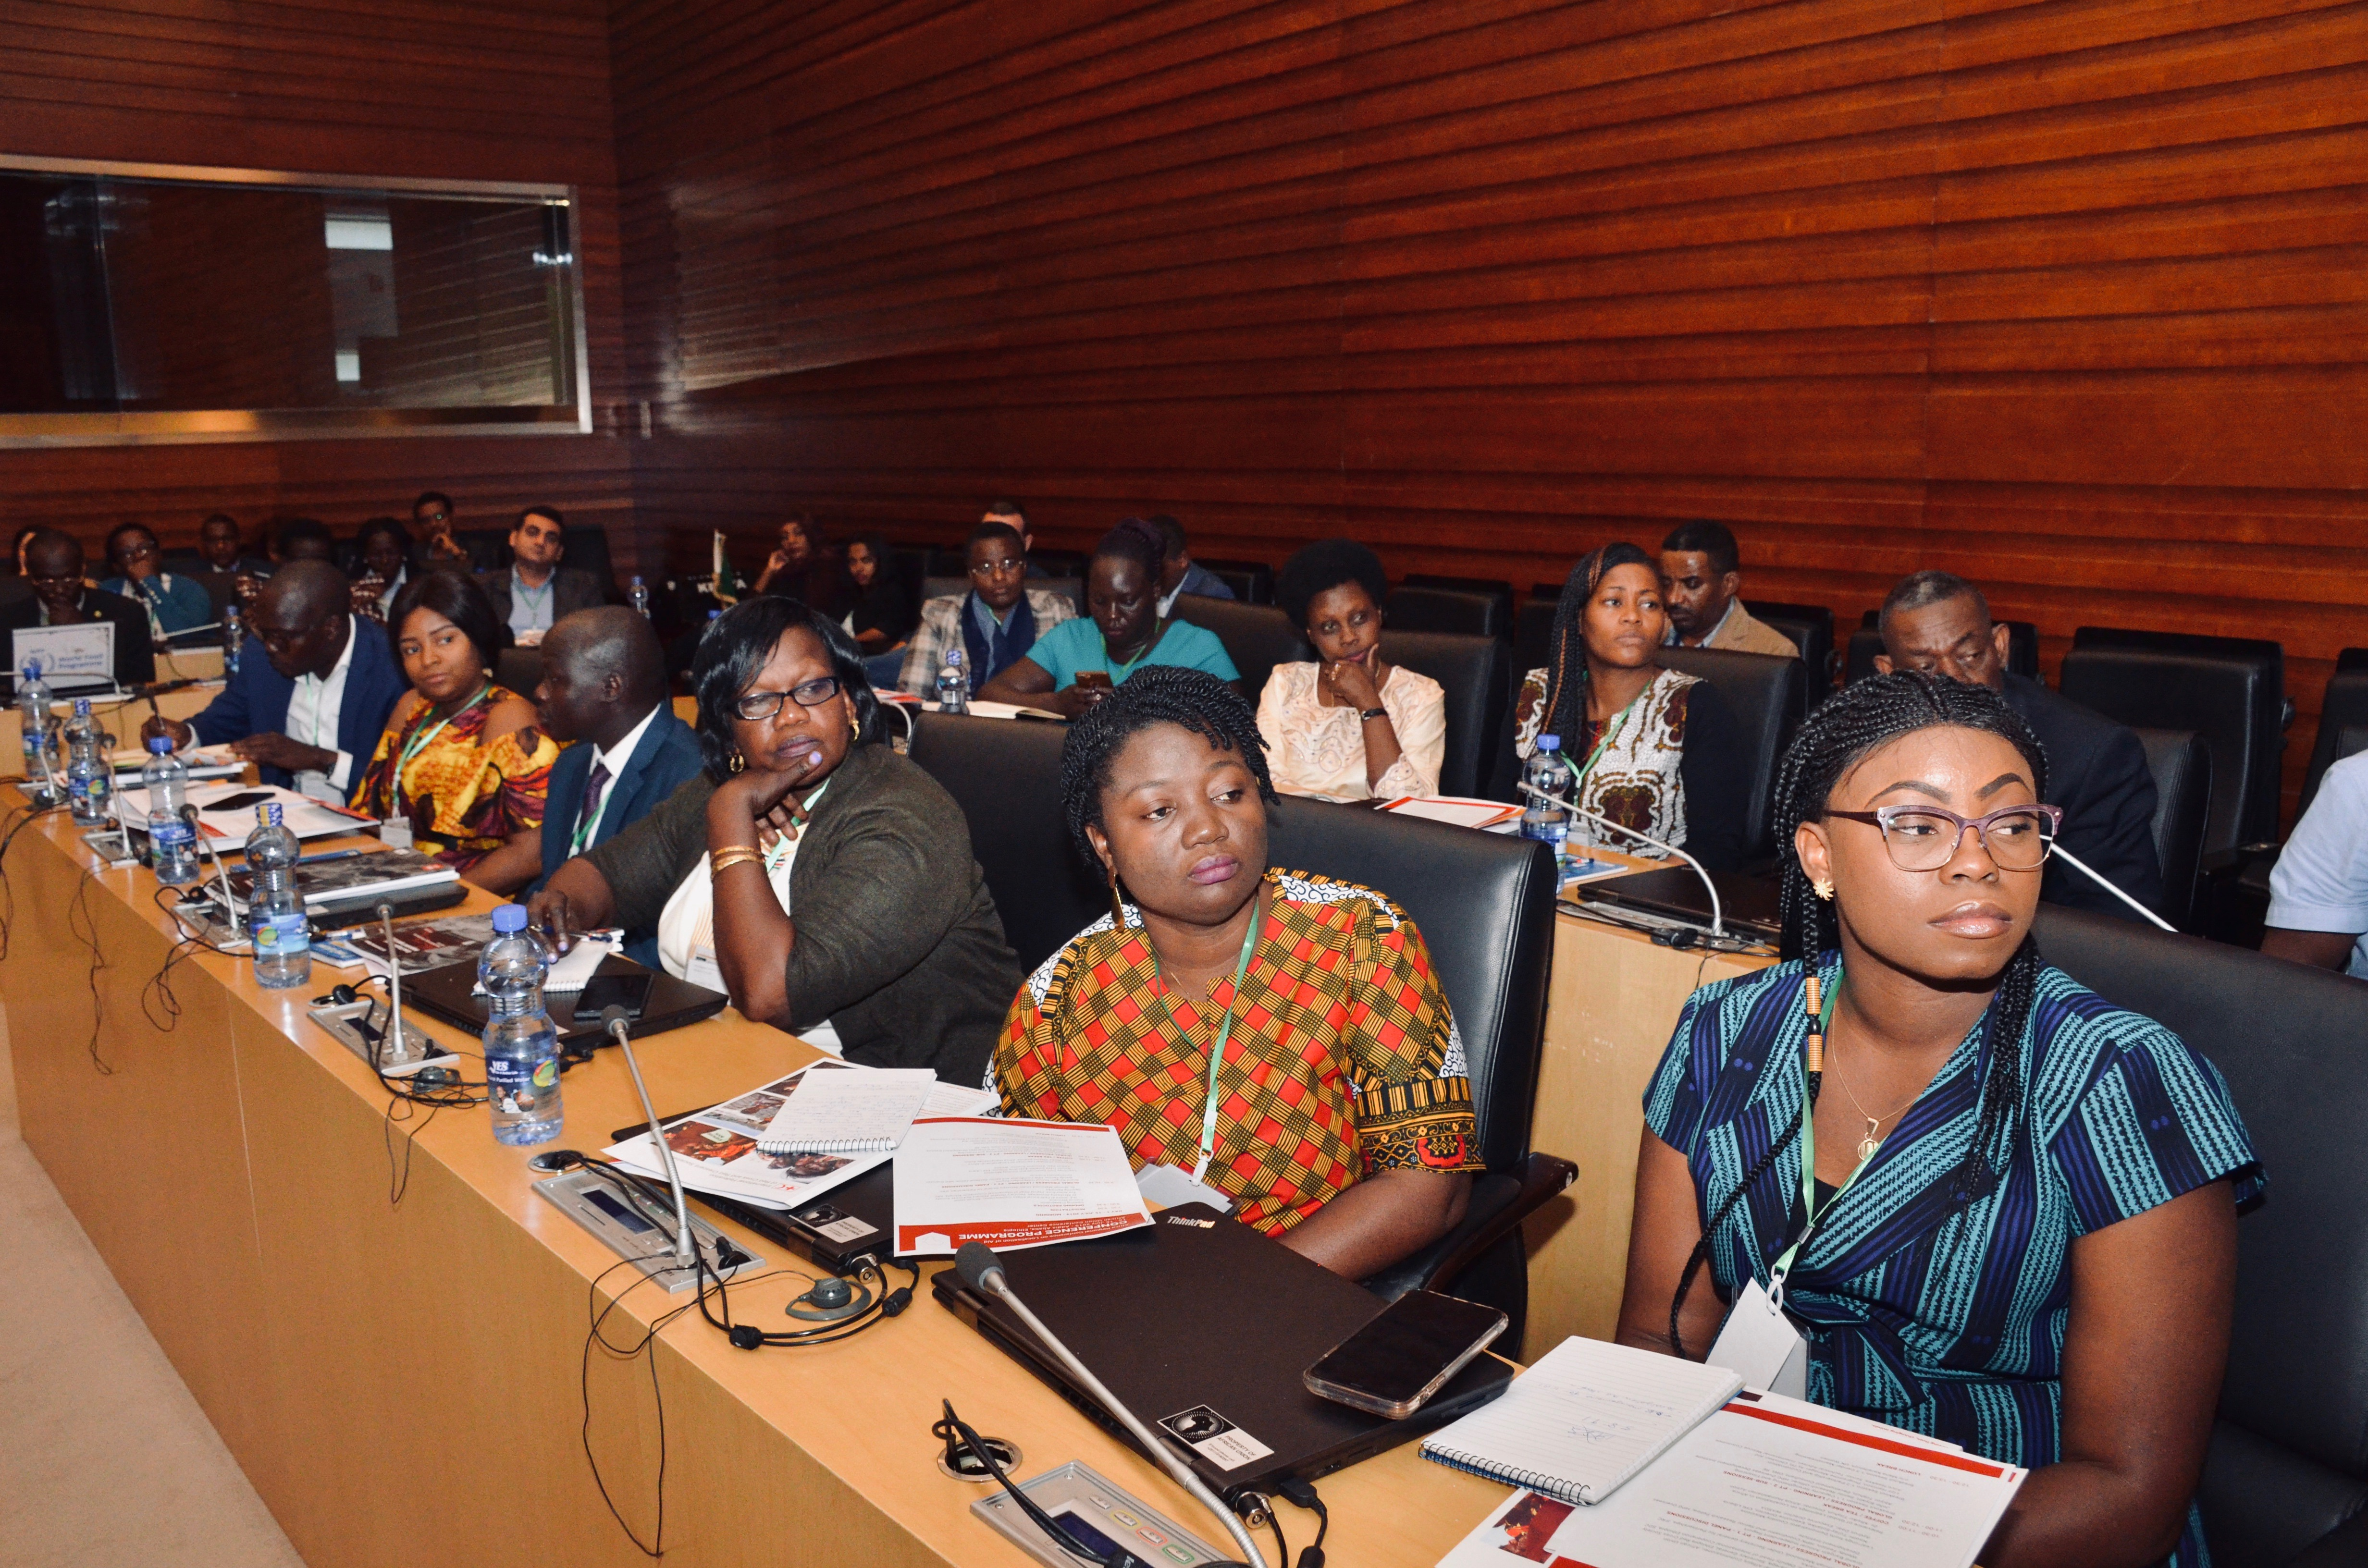 Africa Regional Conference on Localisation Day 1 Opening Session Plenary - Participants 2